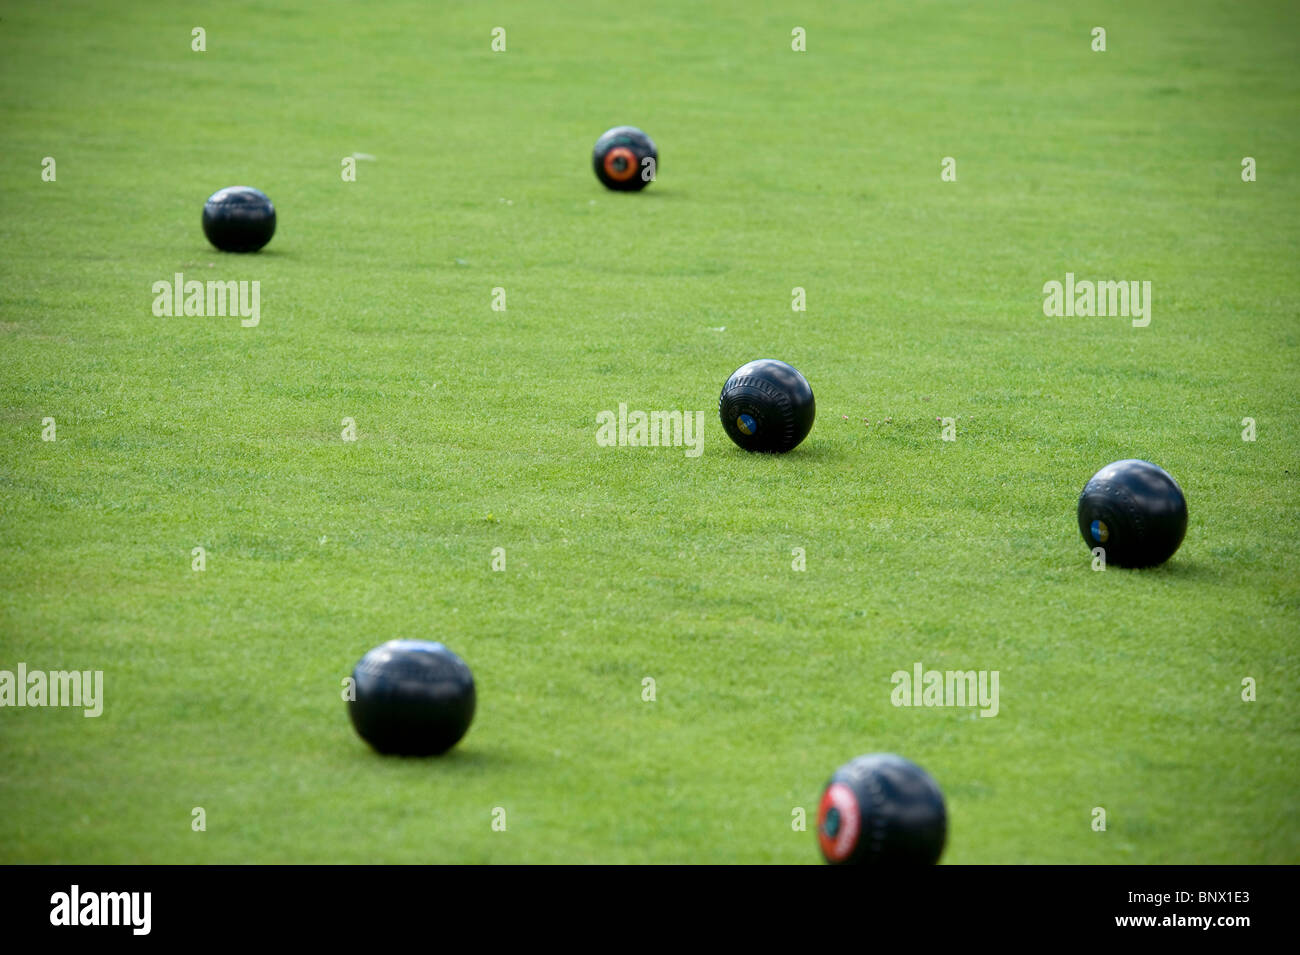 six bowls spread over the green in a game of lawn bowls - Stock Image